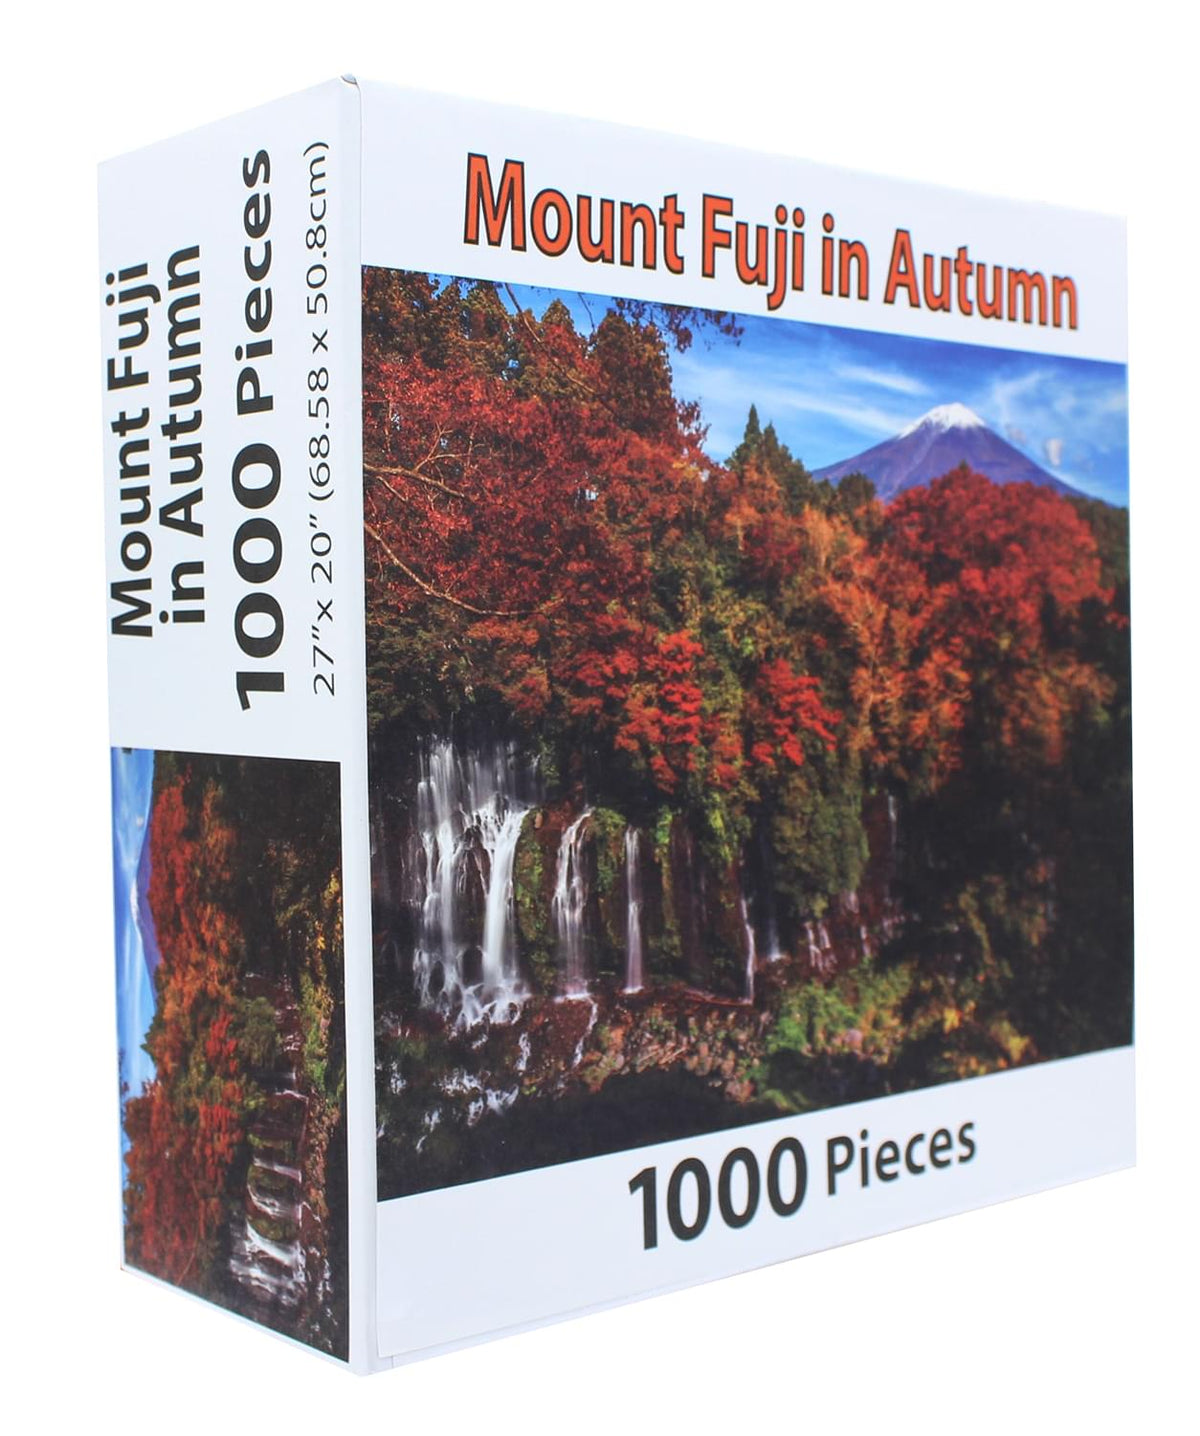 PuzzleWorks 1000 Piece Jigsaw Puzzle | Mount Fuji In Autumn